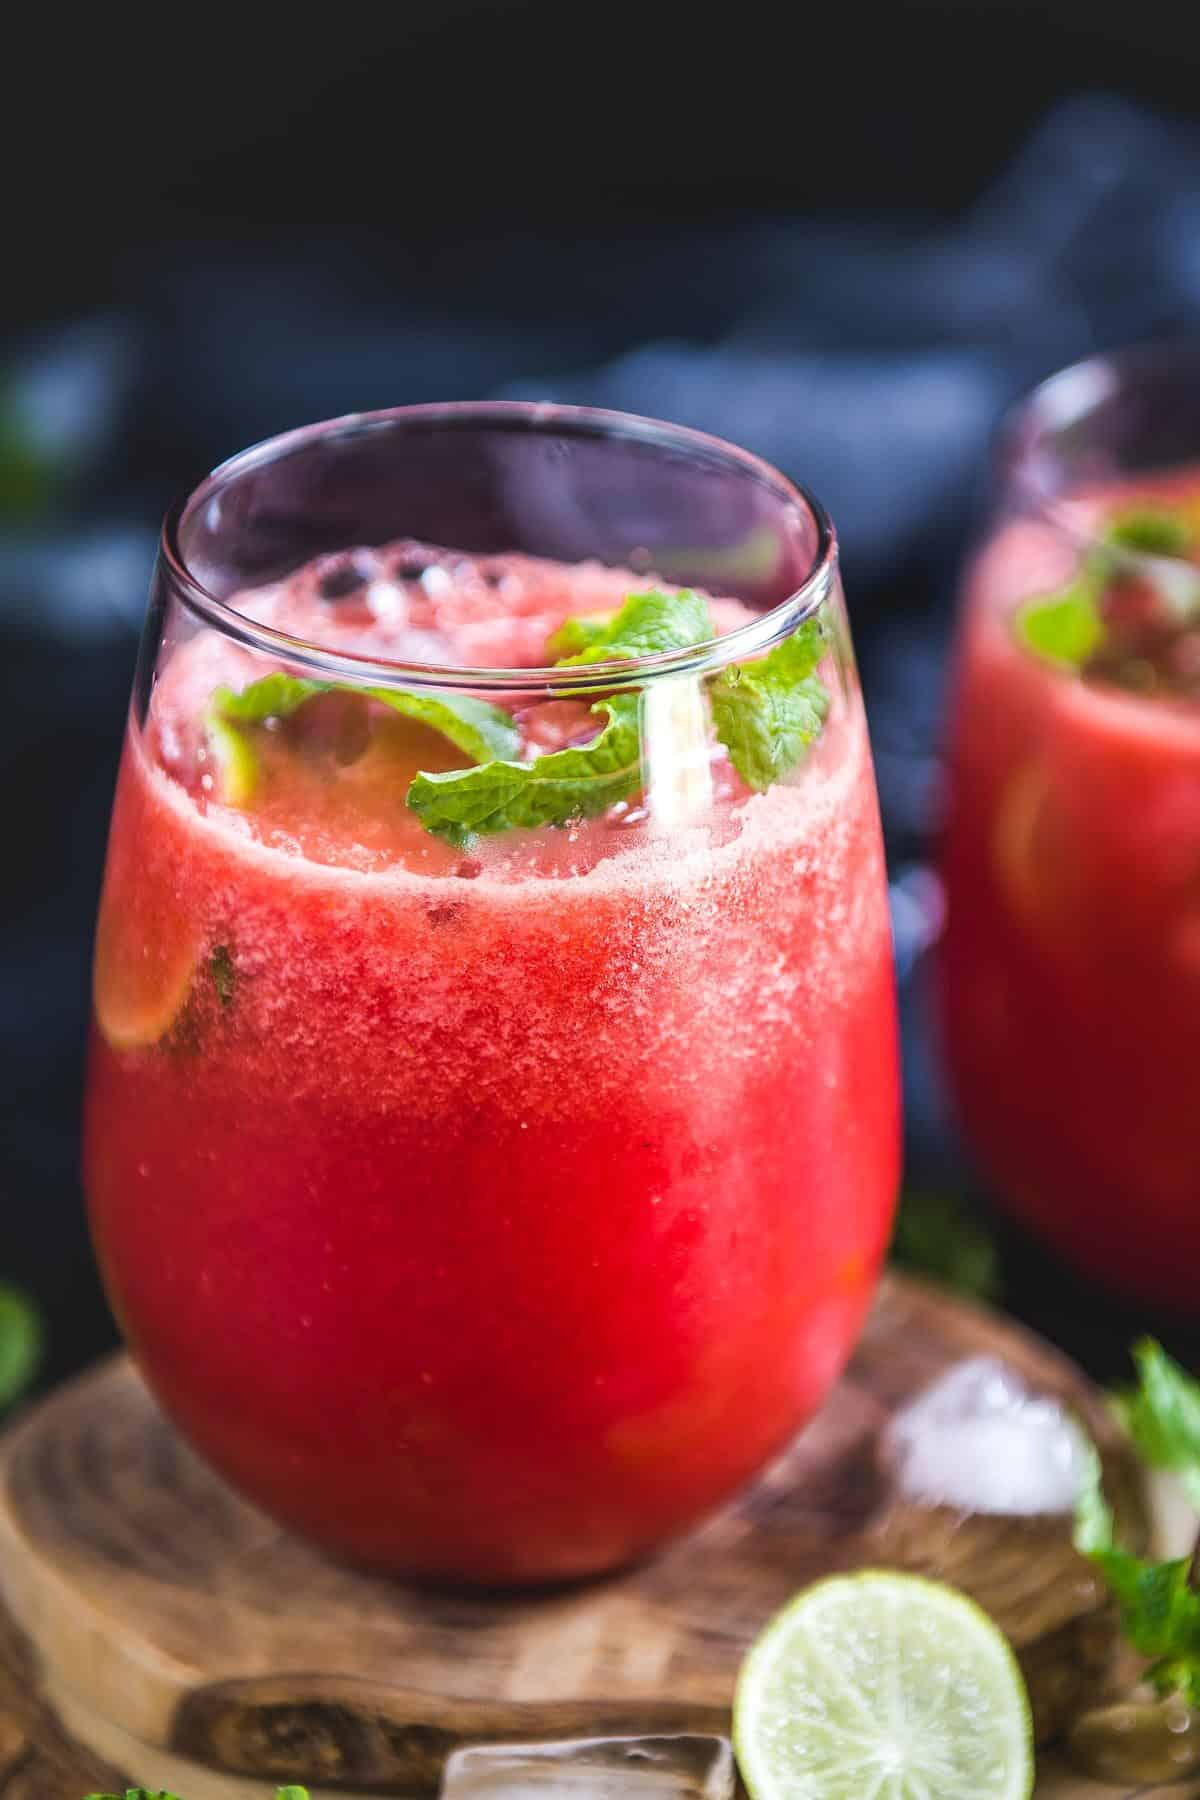 Watermelon Ginger Juice served in a glass.